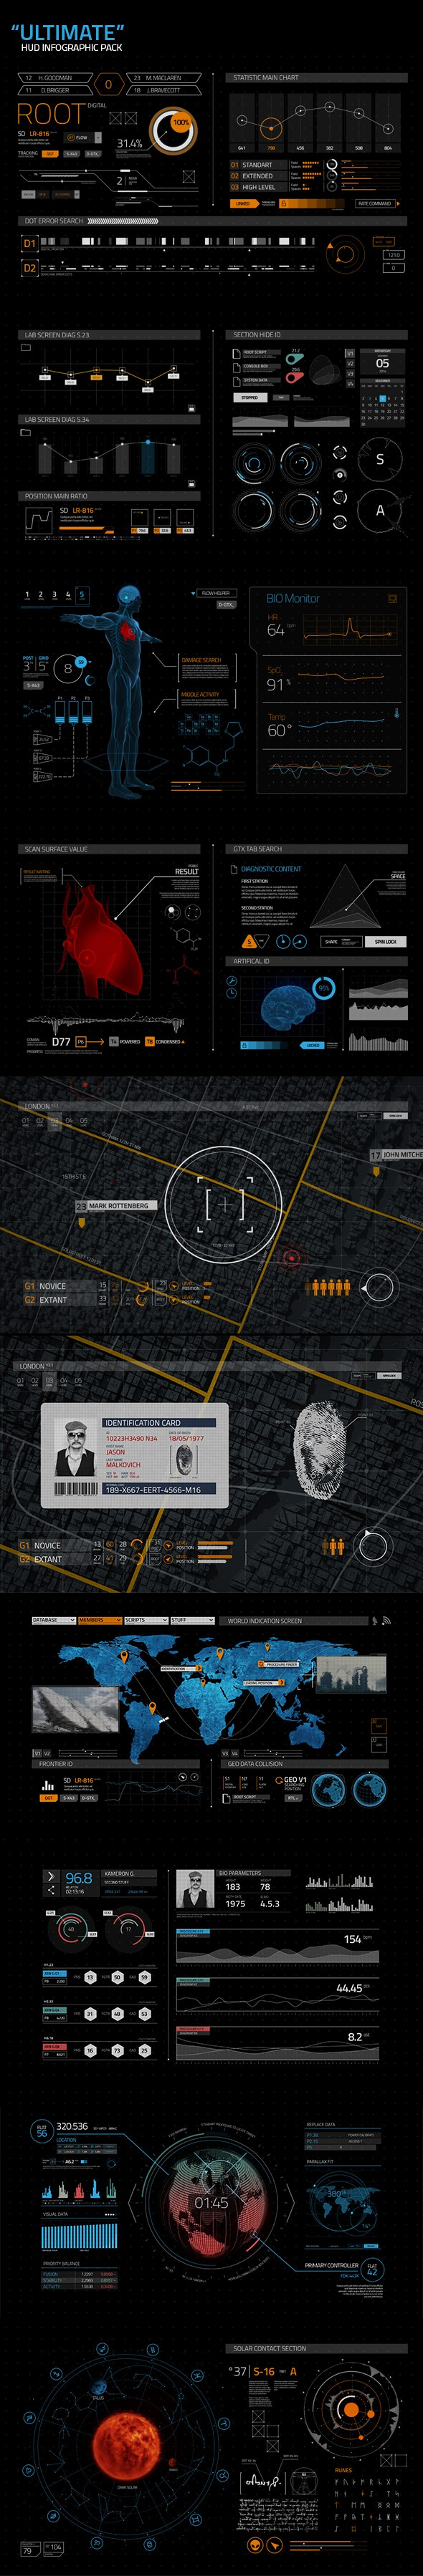 ultimate infographic hud 300 videohive free download after